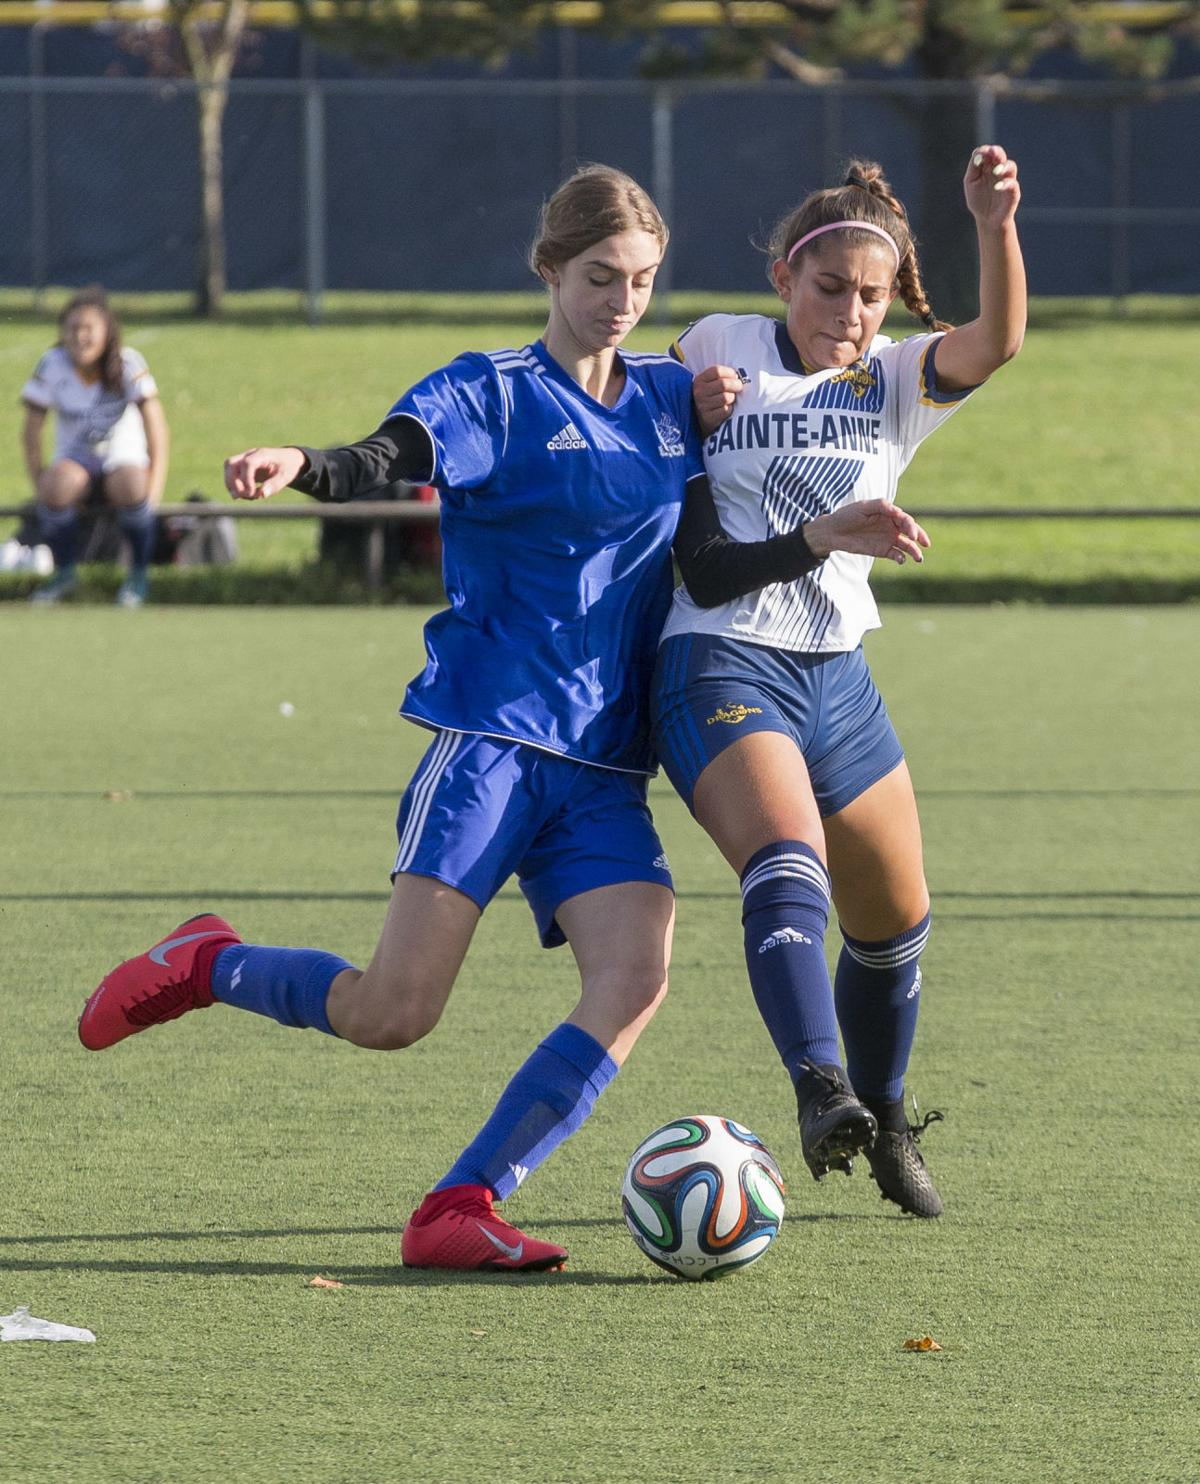 Collège Sainte-Anne blanks LCCHS for second win of the season